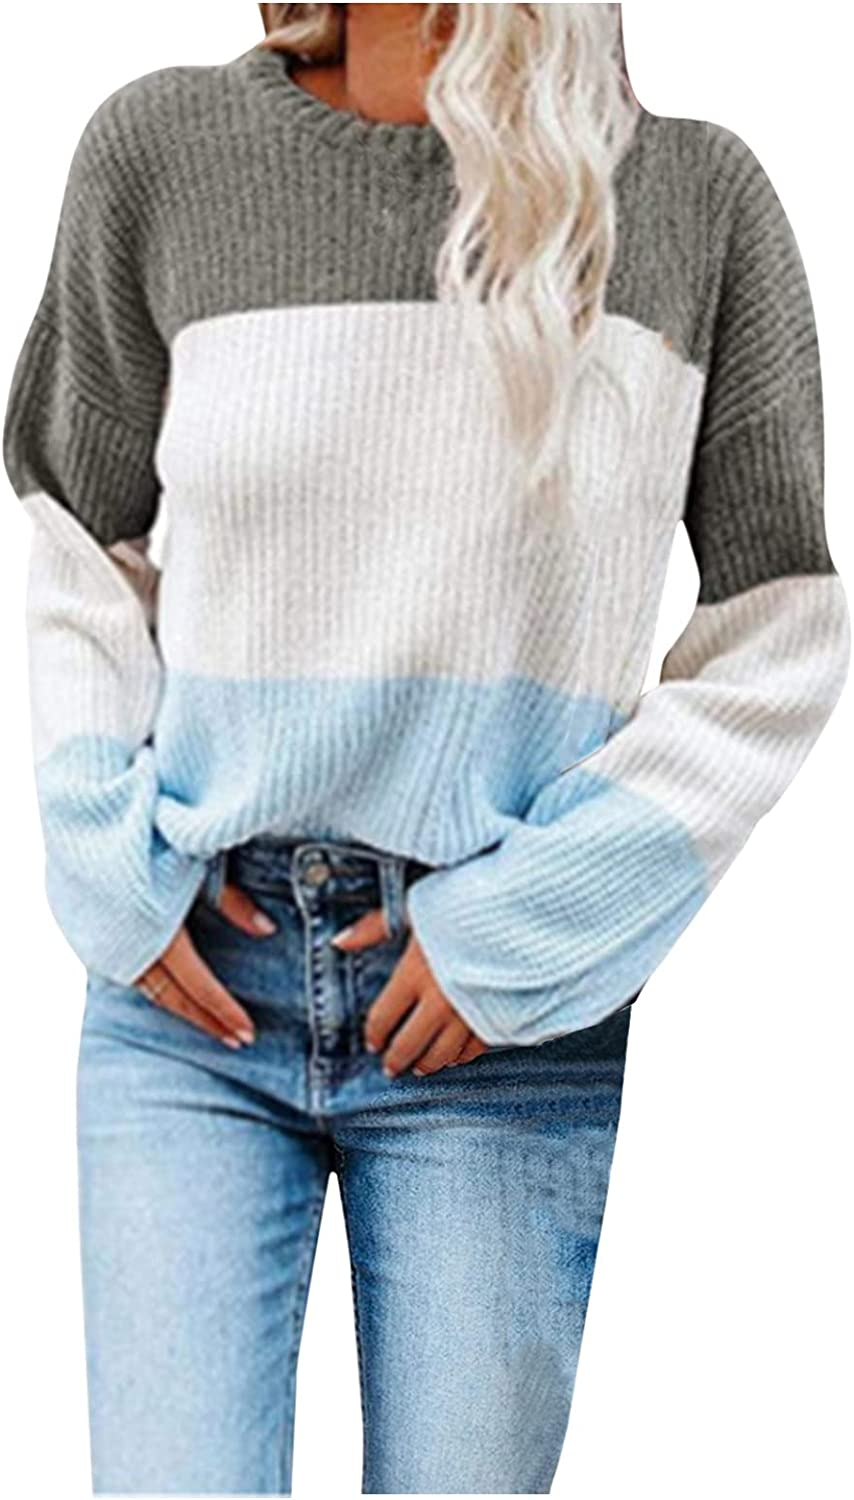 Women's Fashion Long Sleeve Sweaters Color Block Casual Knitted Sweater Crew Neck Loose Pullover Jumper Tops for Winter